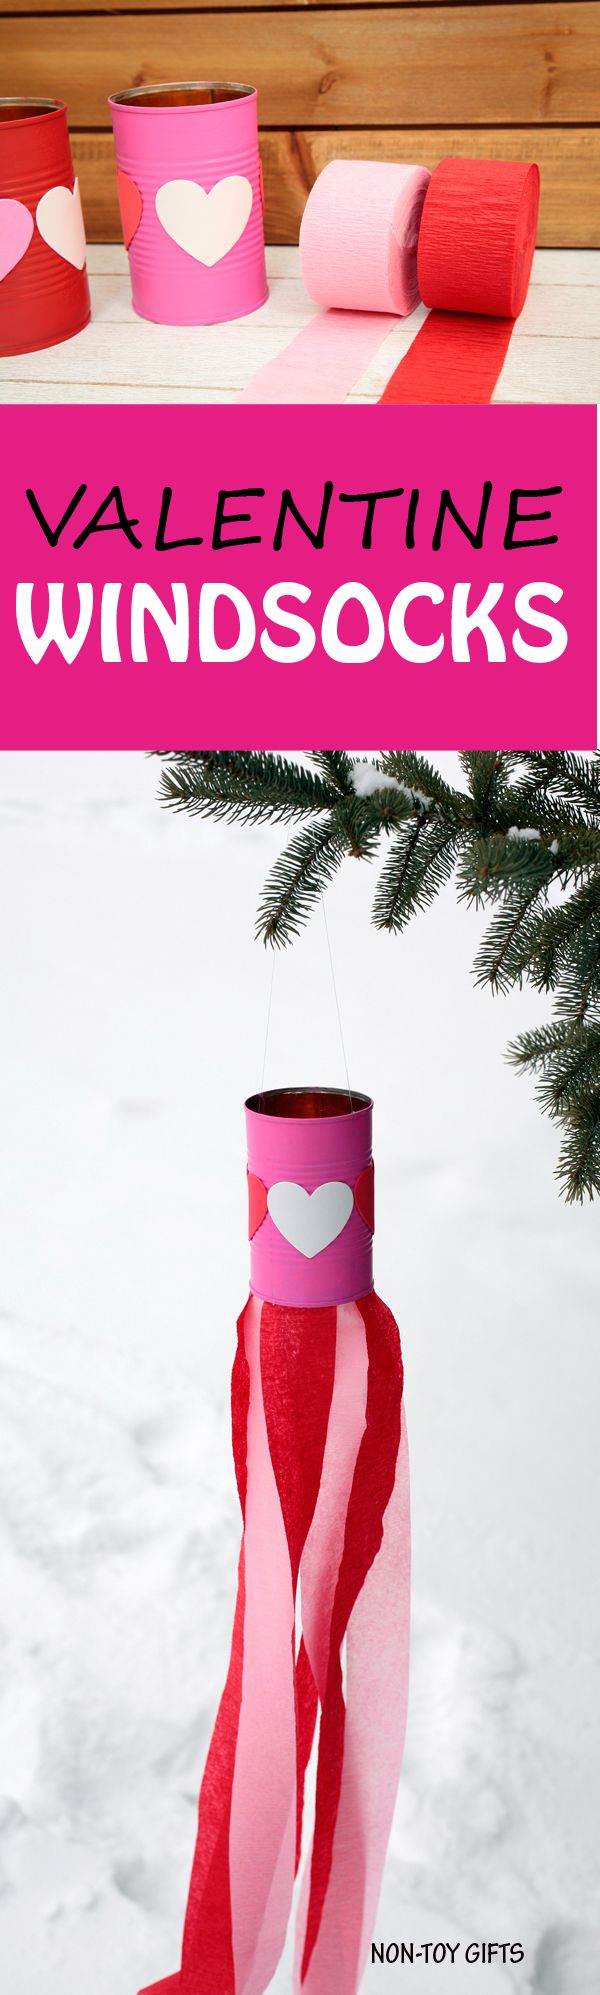 Easy valentine crafts for kindergarten - Valentine S Day Kids Craft Heart Windsocks With Recycled Tin Can Heart Stickers And Crepe Valentines Crafts For Preschoolerseasy